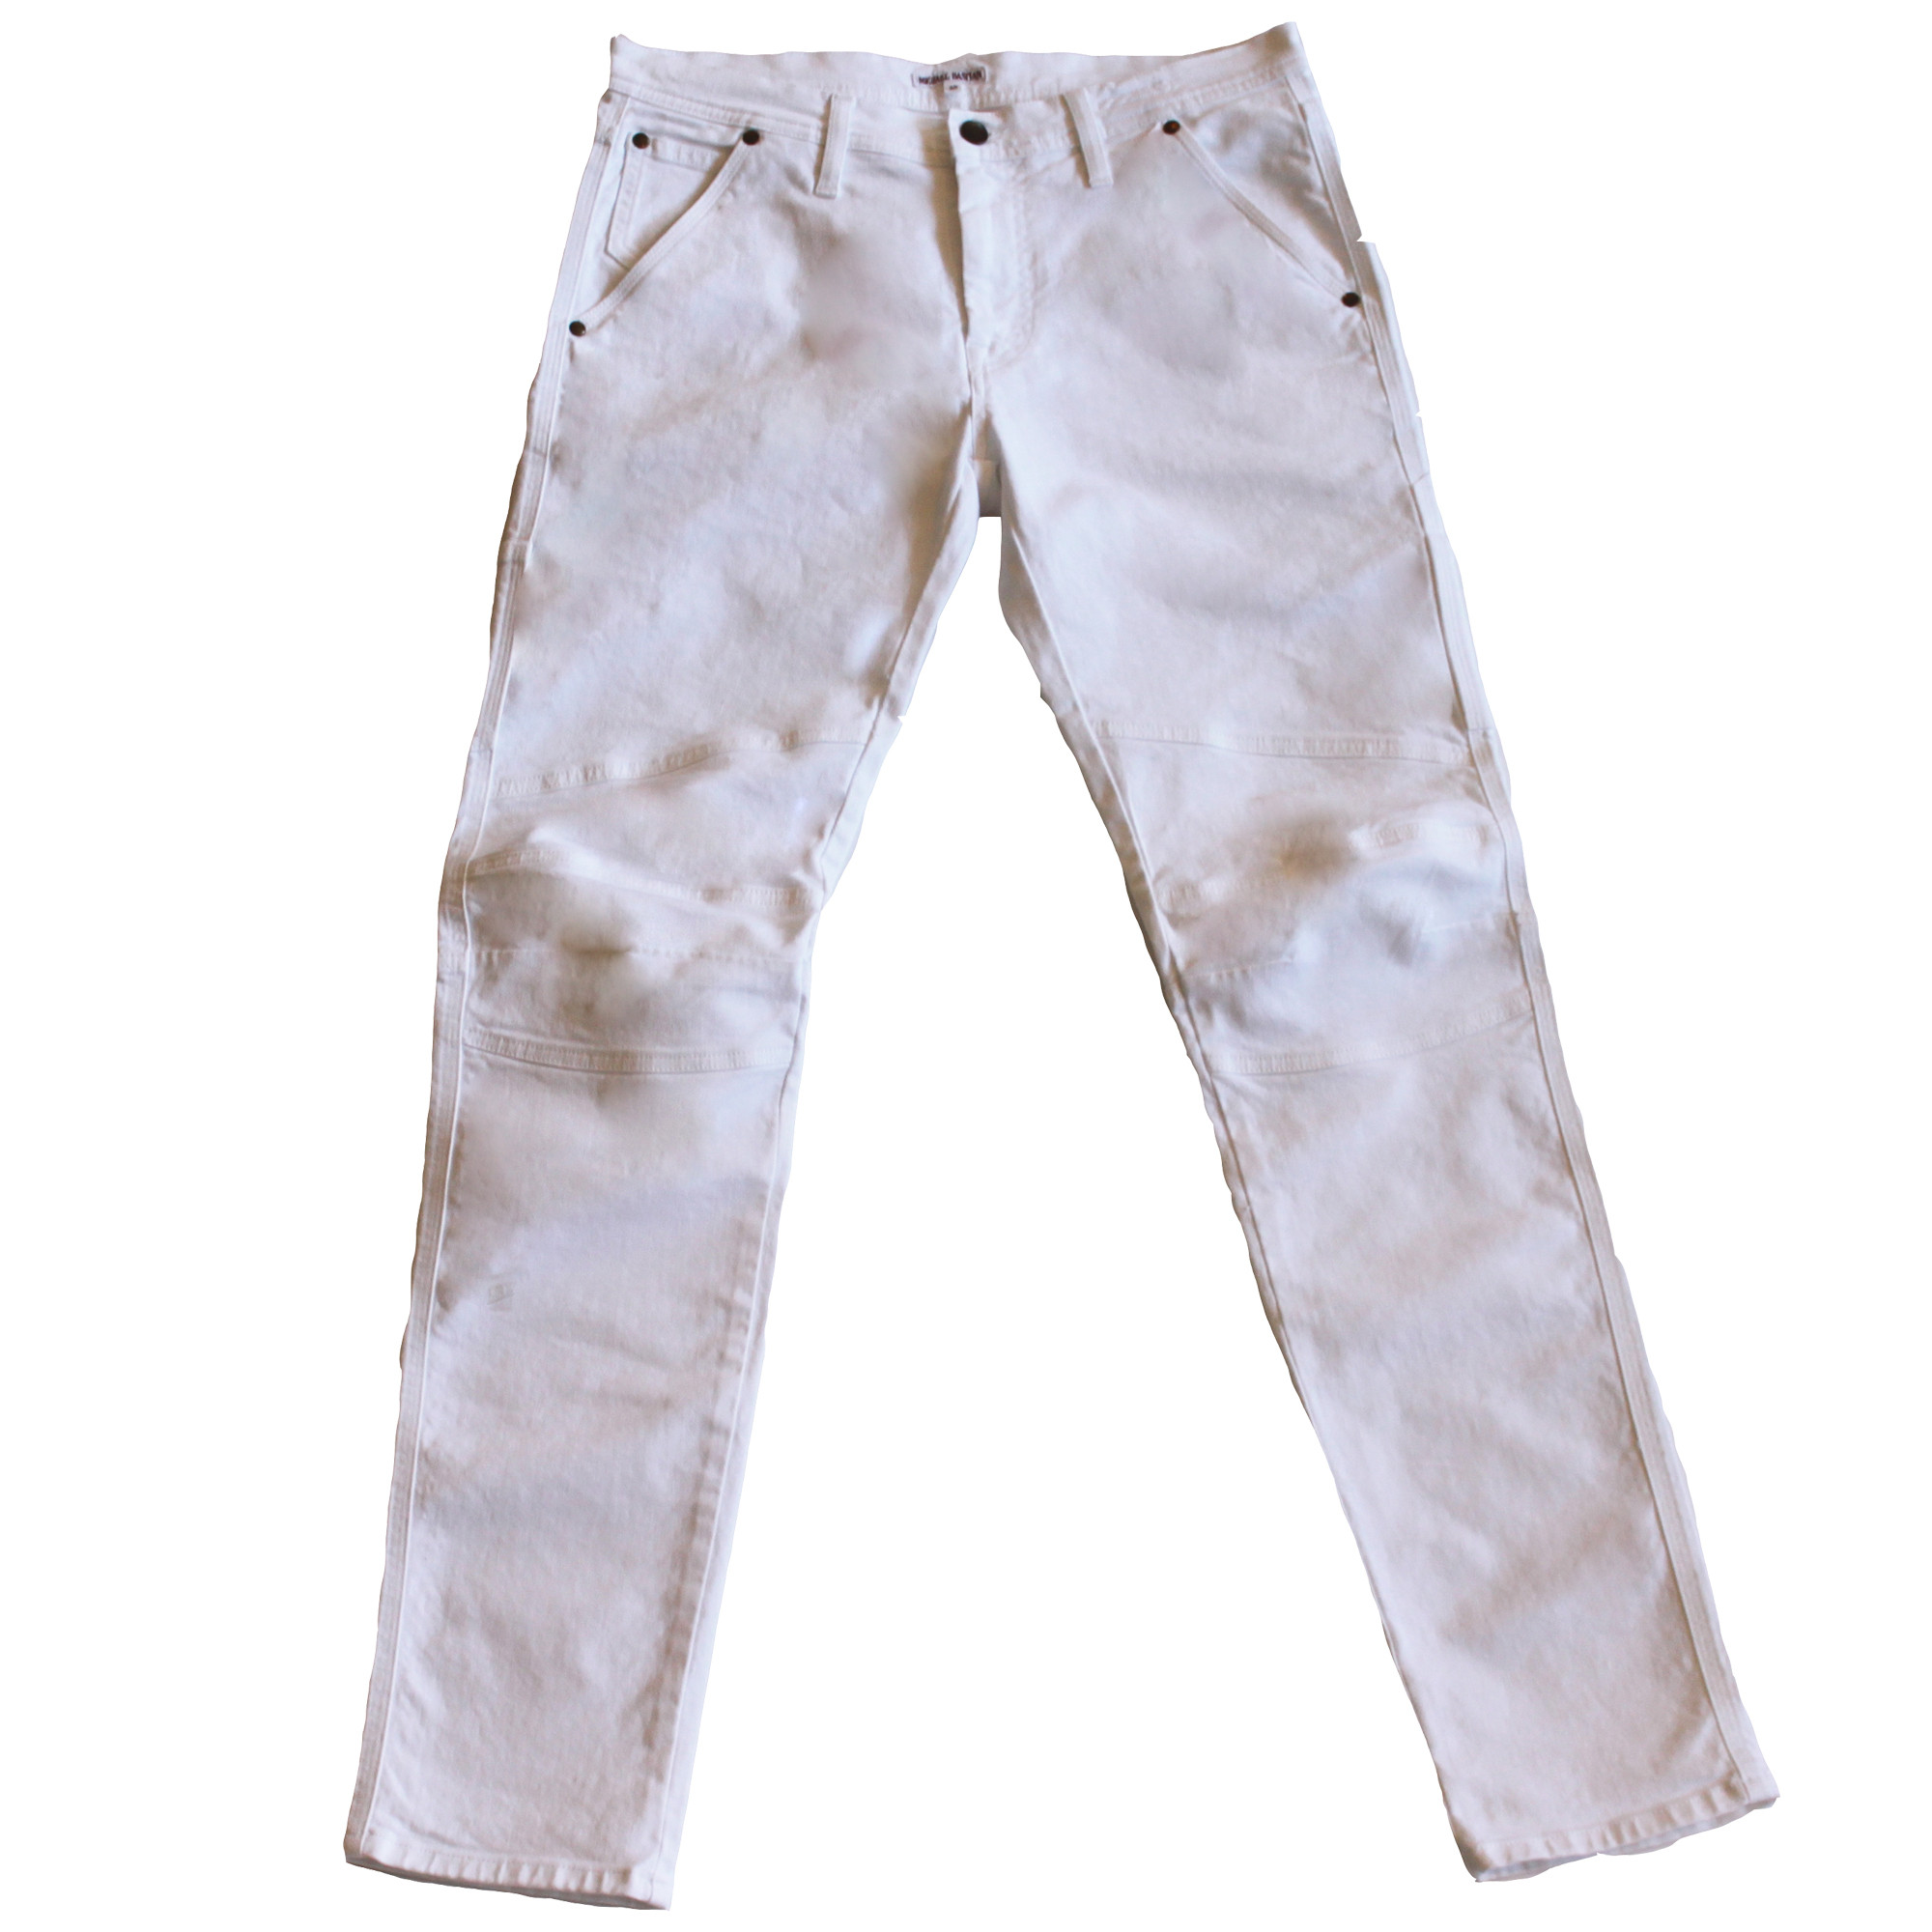 Michael Bastian Carpenter Jean - White Denim